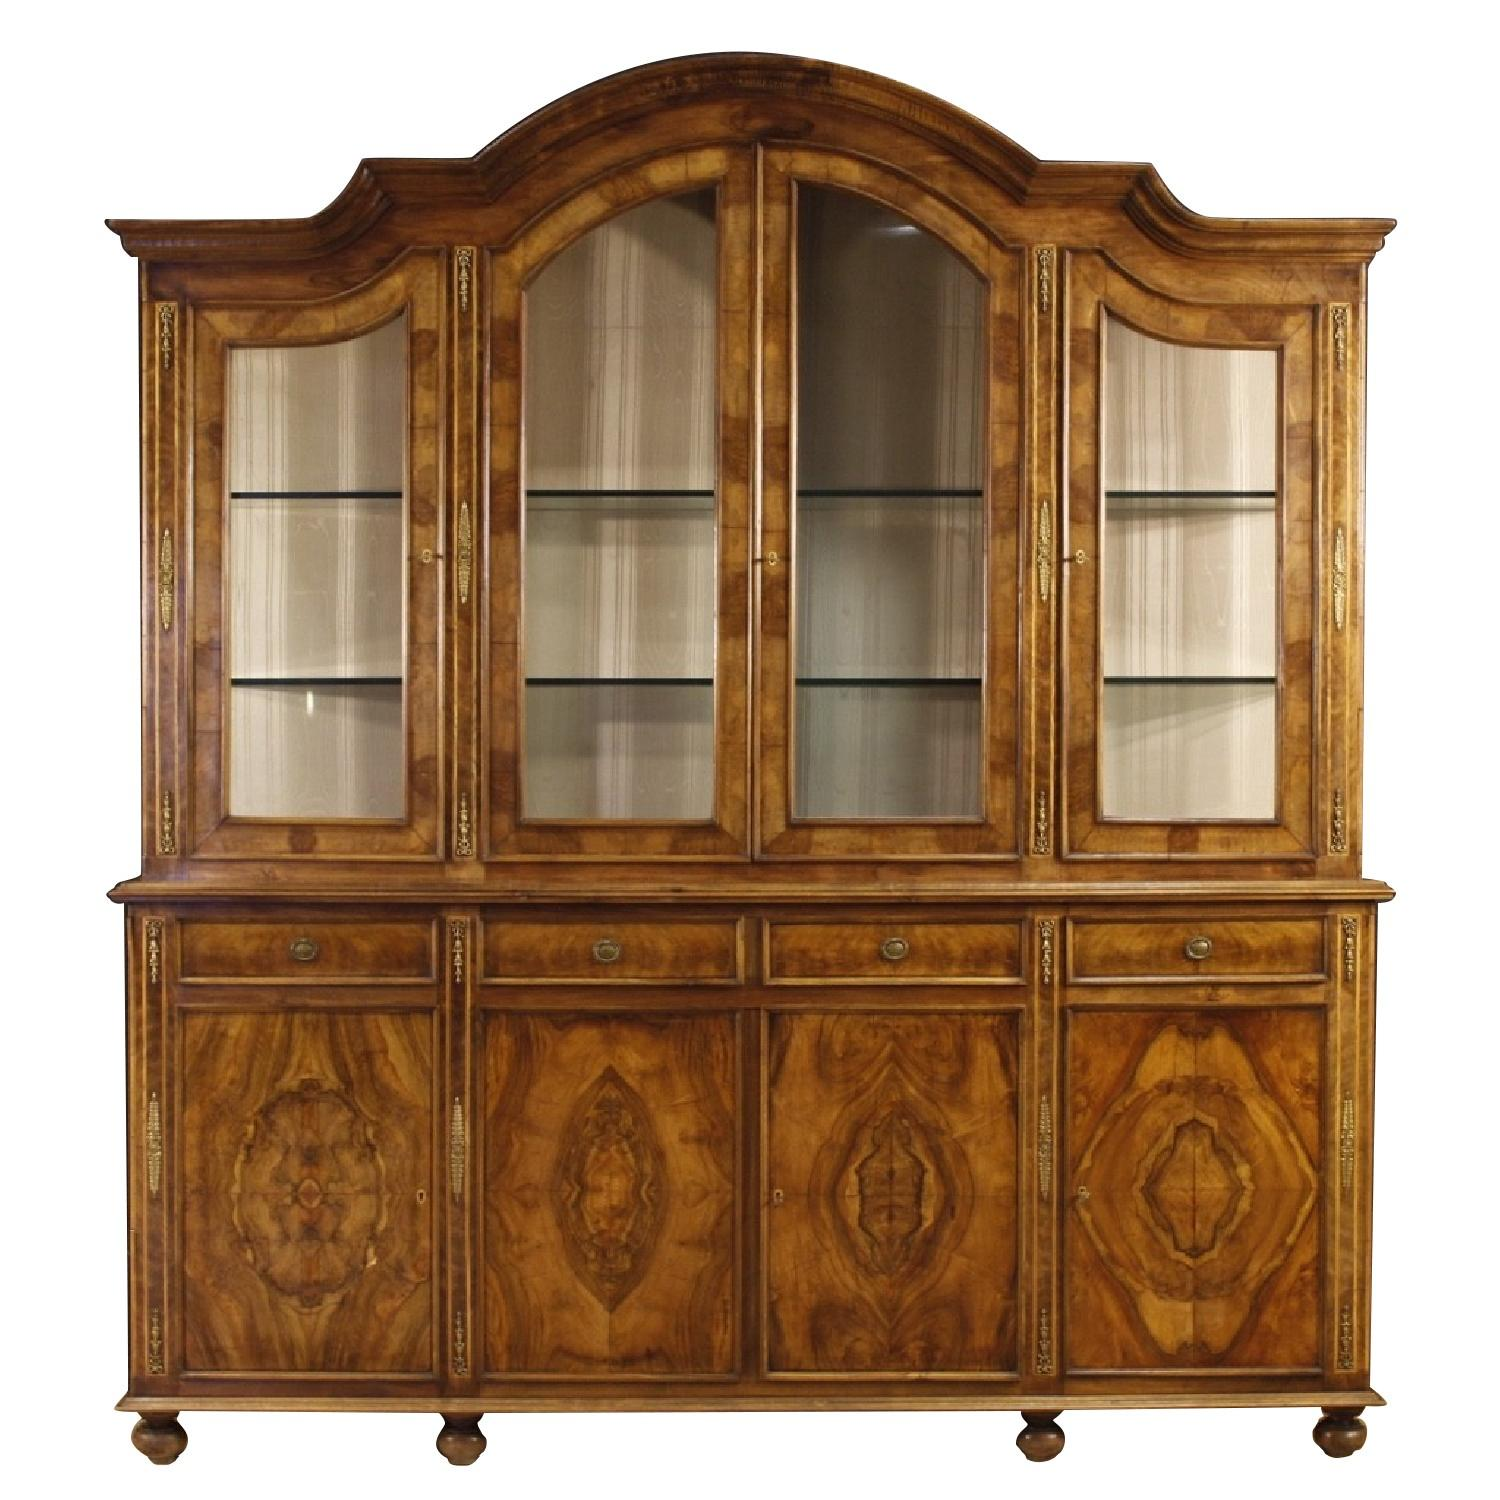 20th Century Italian Bookcase in Walnut & Burl Wood